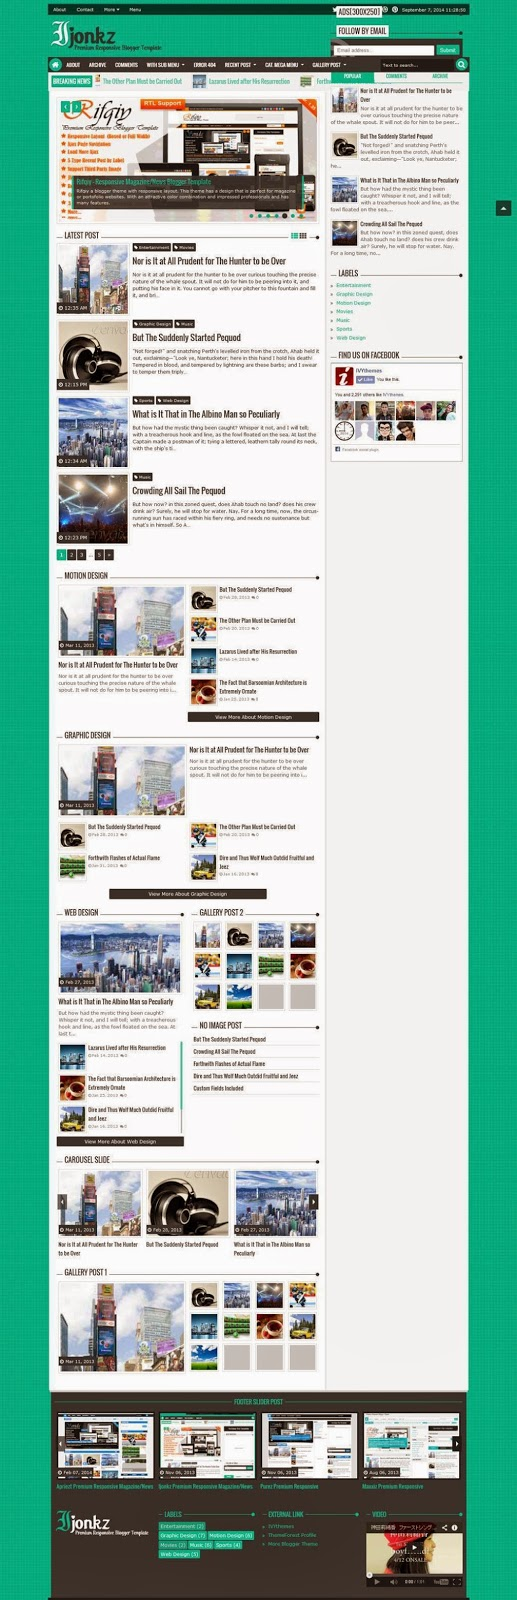 Ijonkz blogger template by www.firoz.me